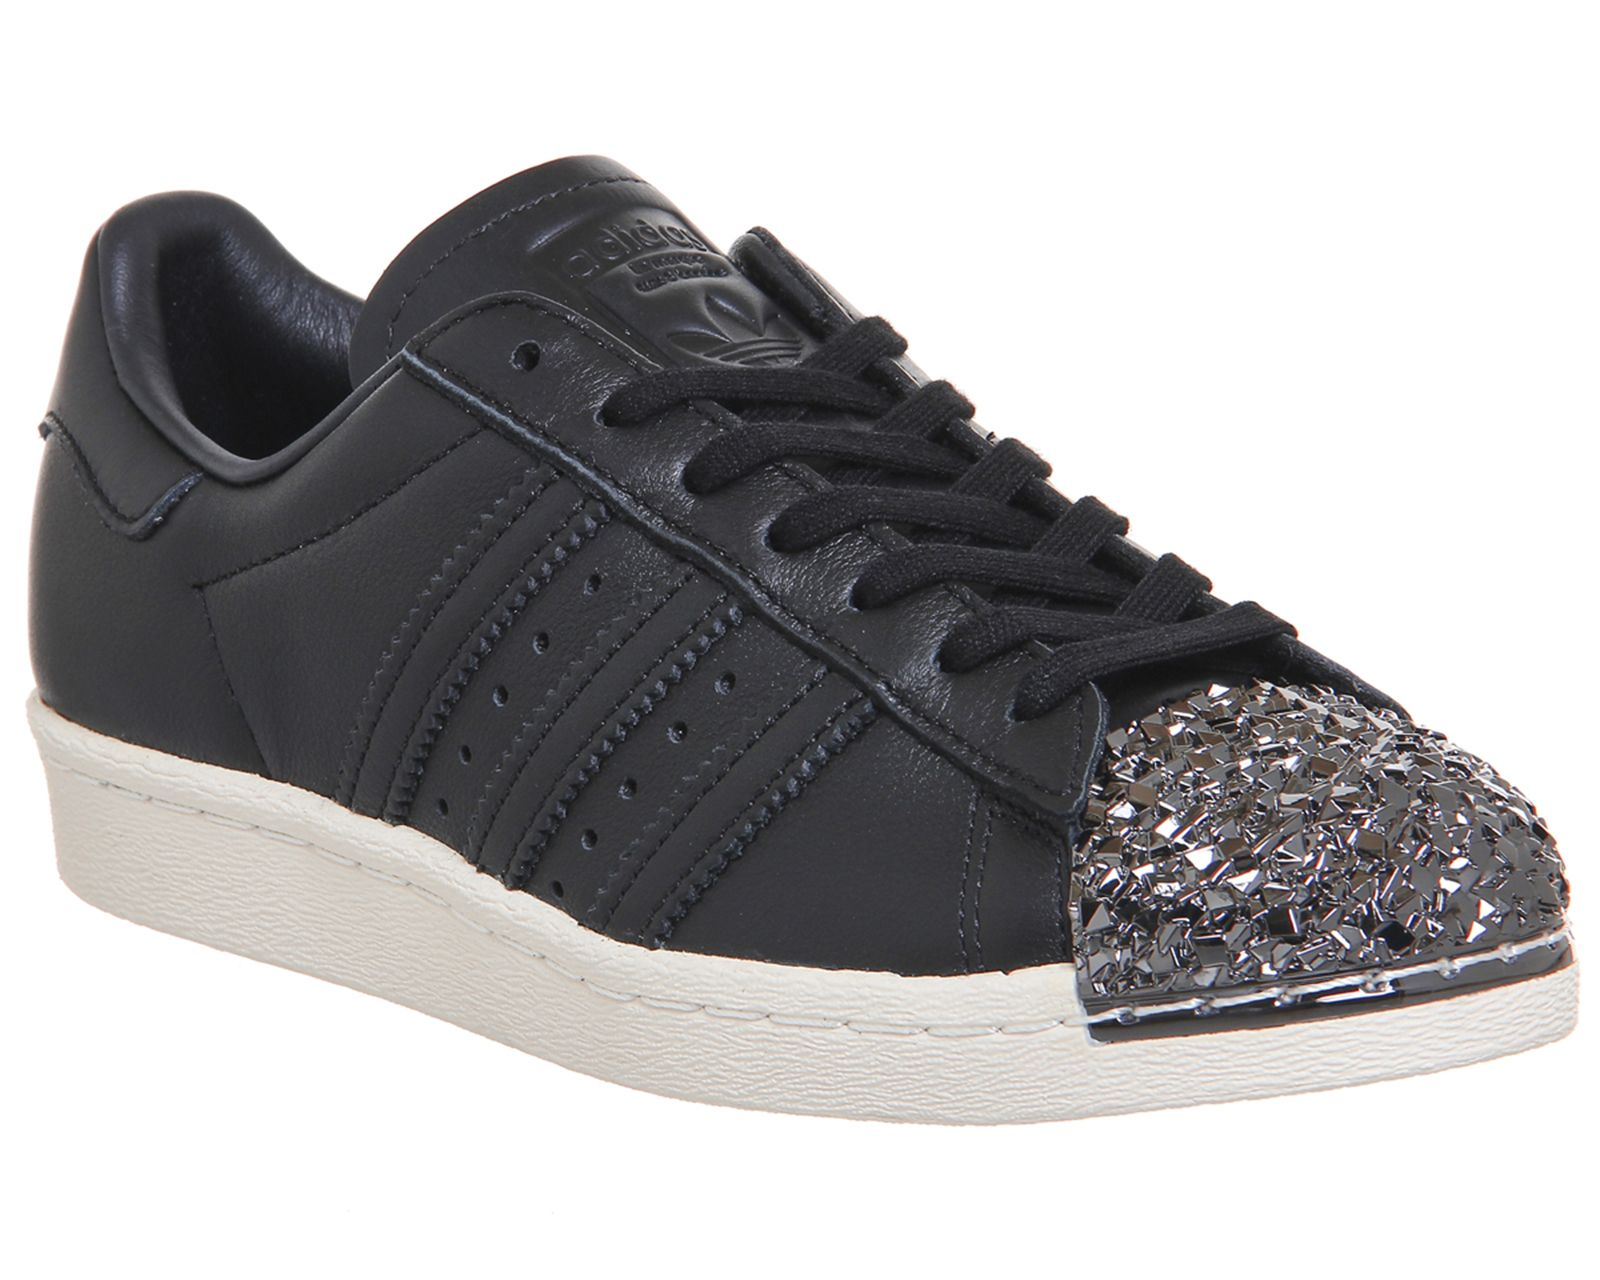 competitive price 2a6cc 6146c Adidas Superstar 80s Metal Toe Black Shattered Mirror 3d